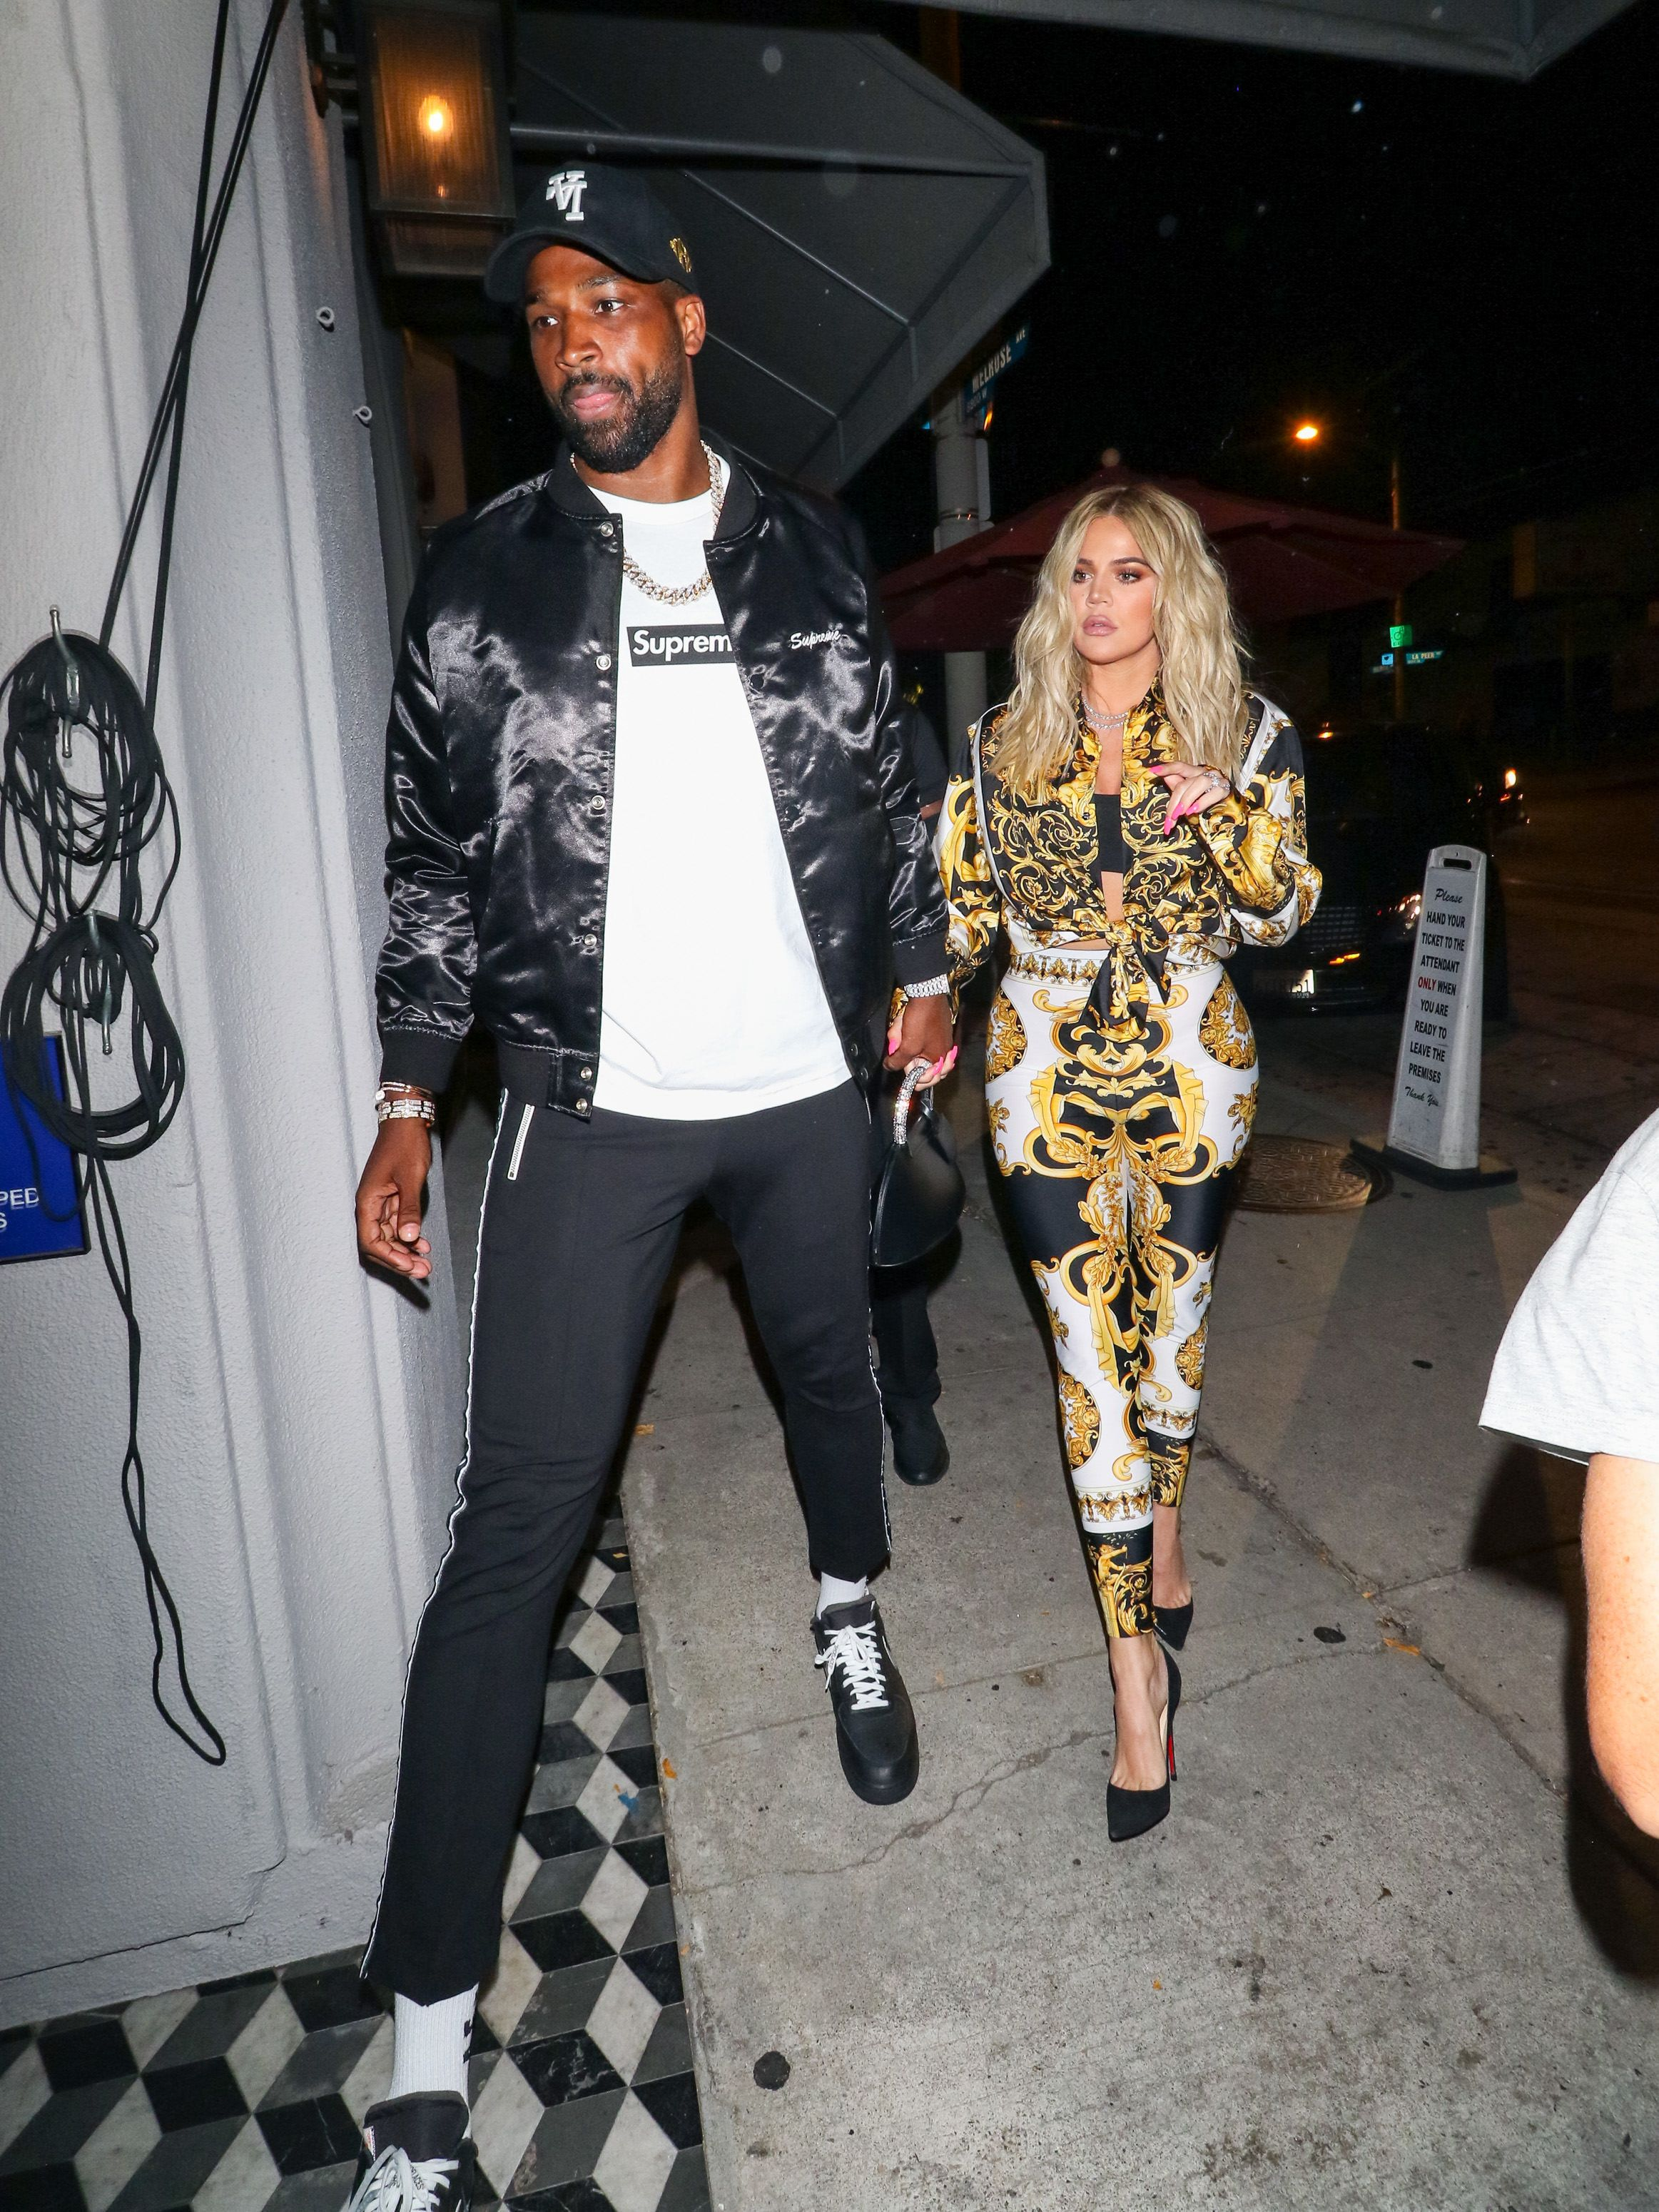 Khloe Kardashian Finally Shares Her Side Of Tristan Thompson Cheating Scandal